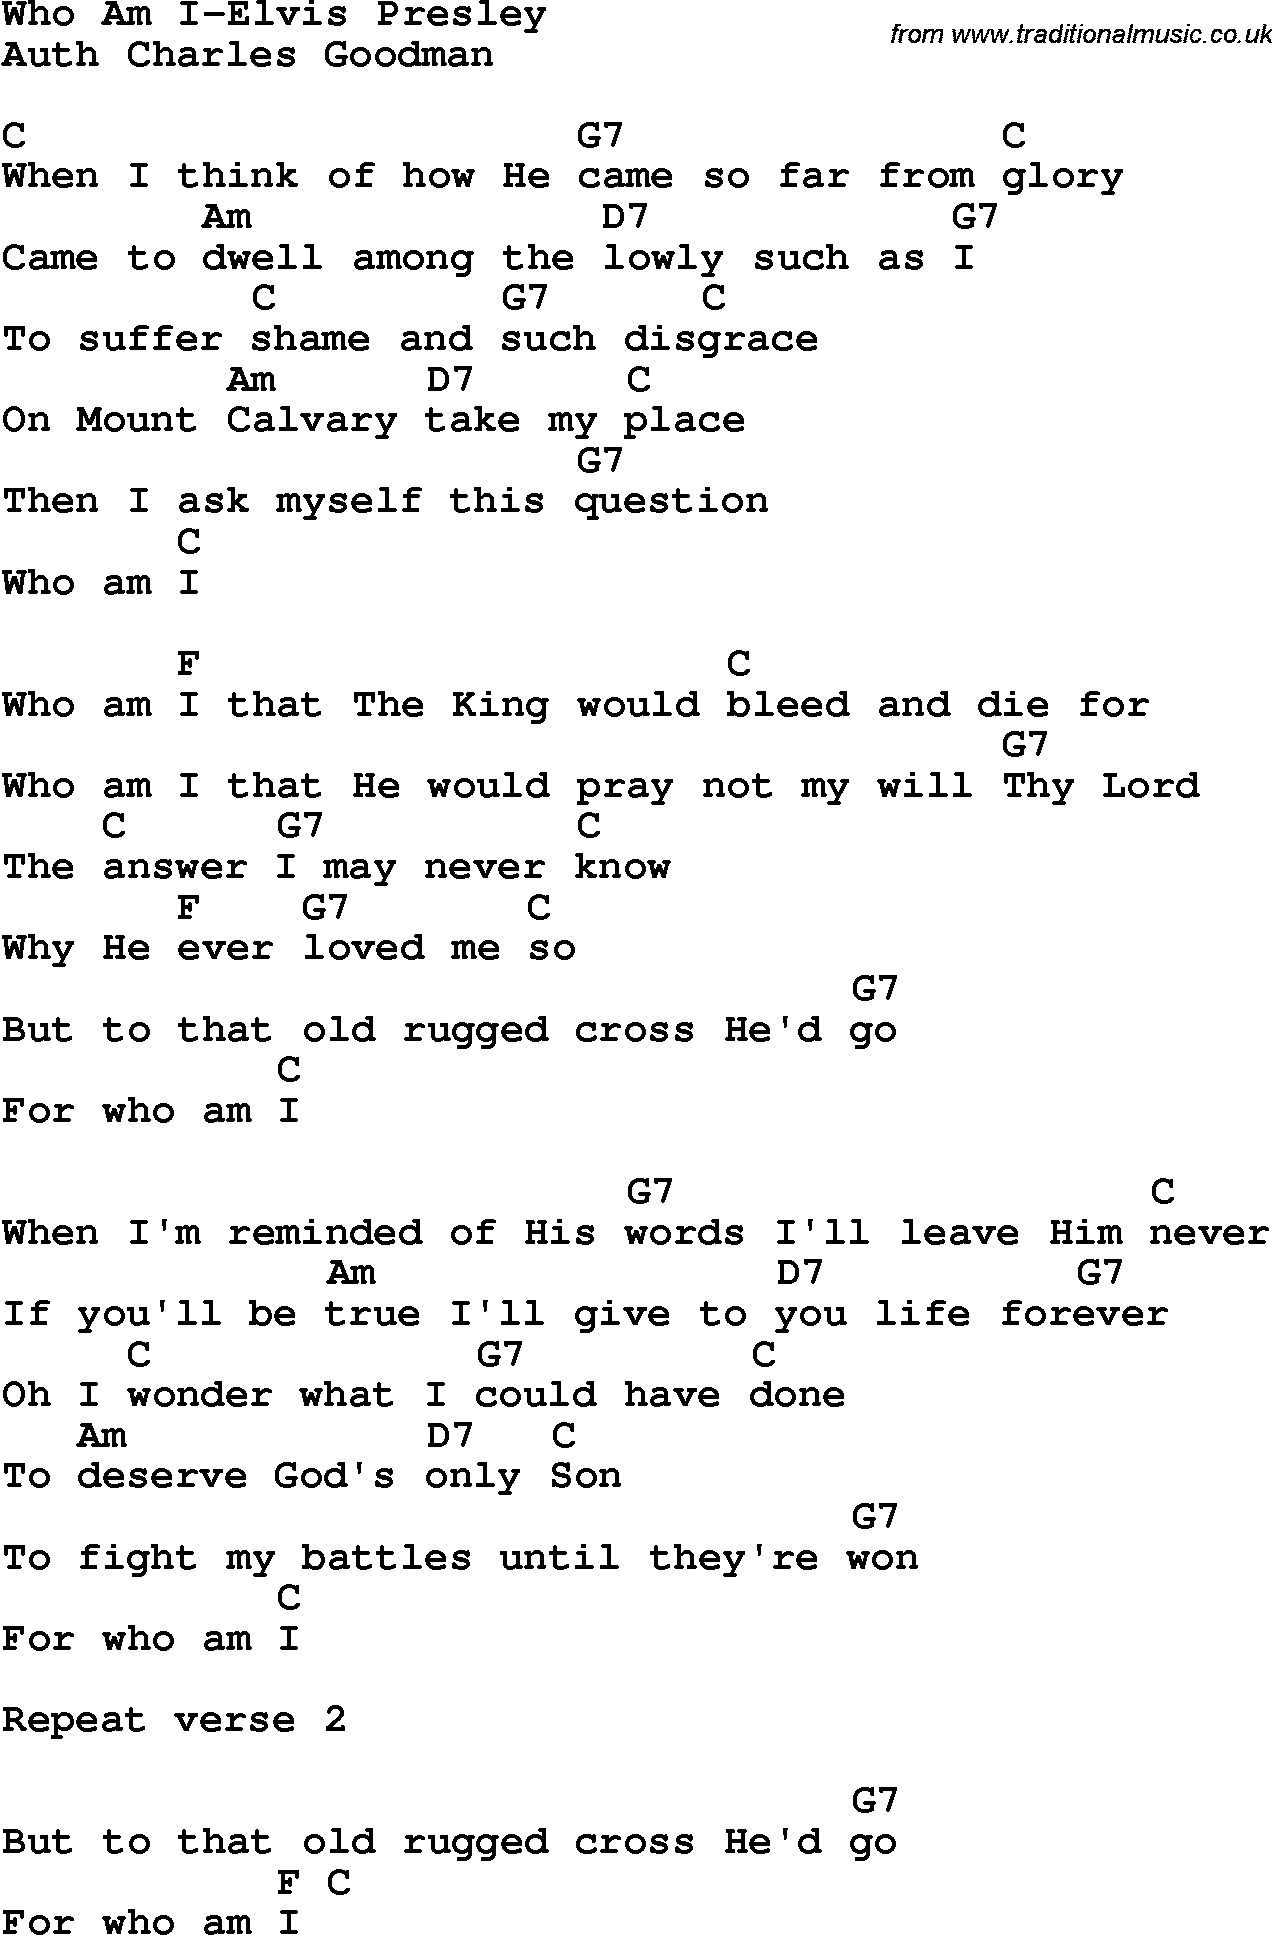 Country southern and bluegrass gospel song who am i elvis presley country southern and bluegrass gospel song who am i elvis presley lyrics and chords hexwebz Images